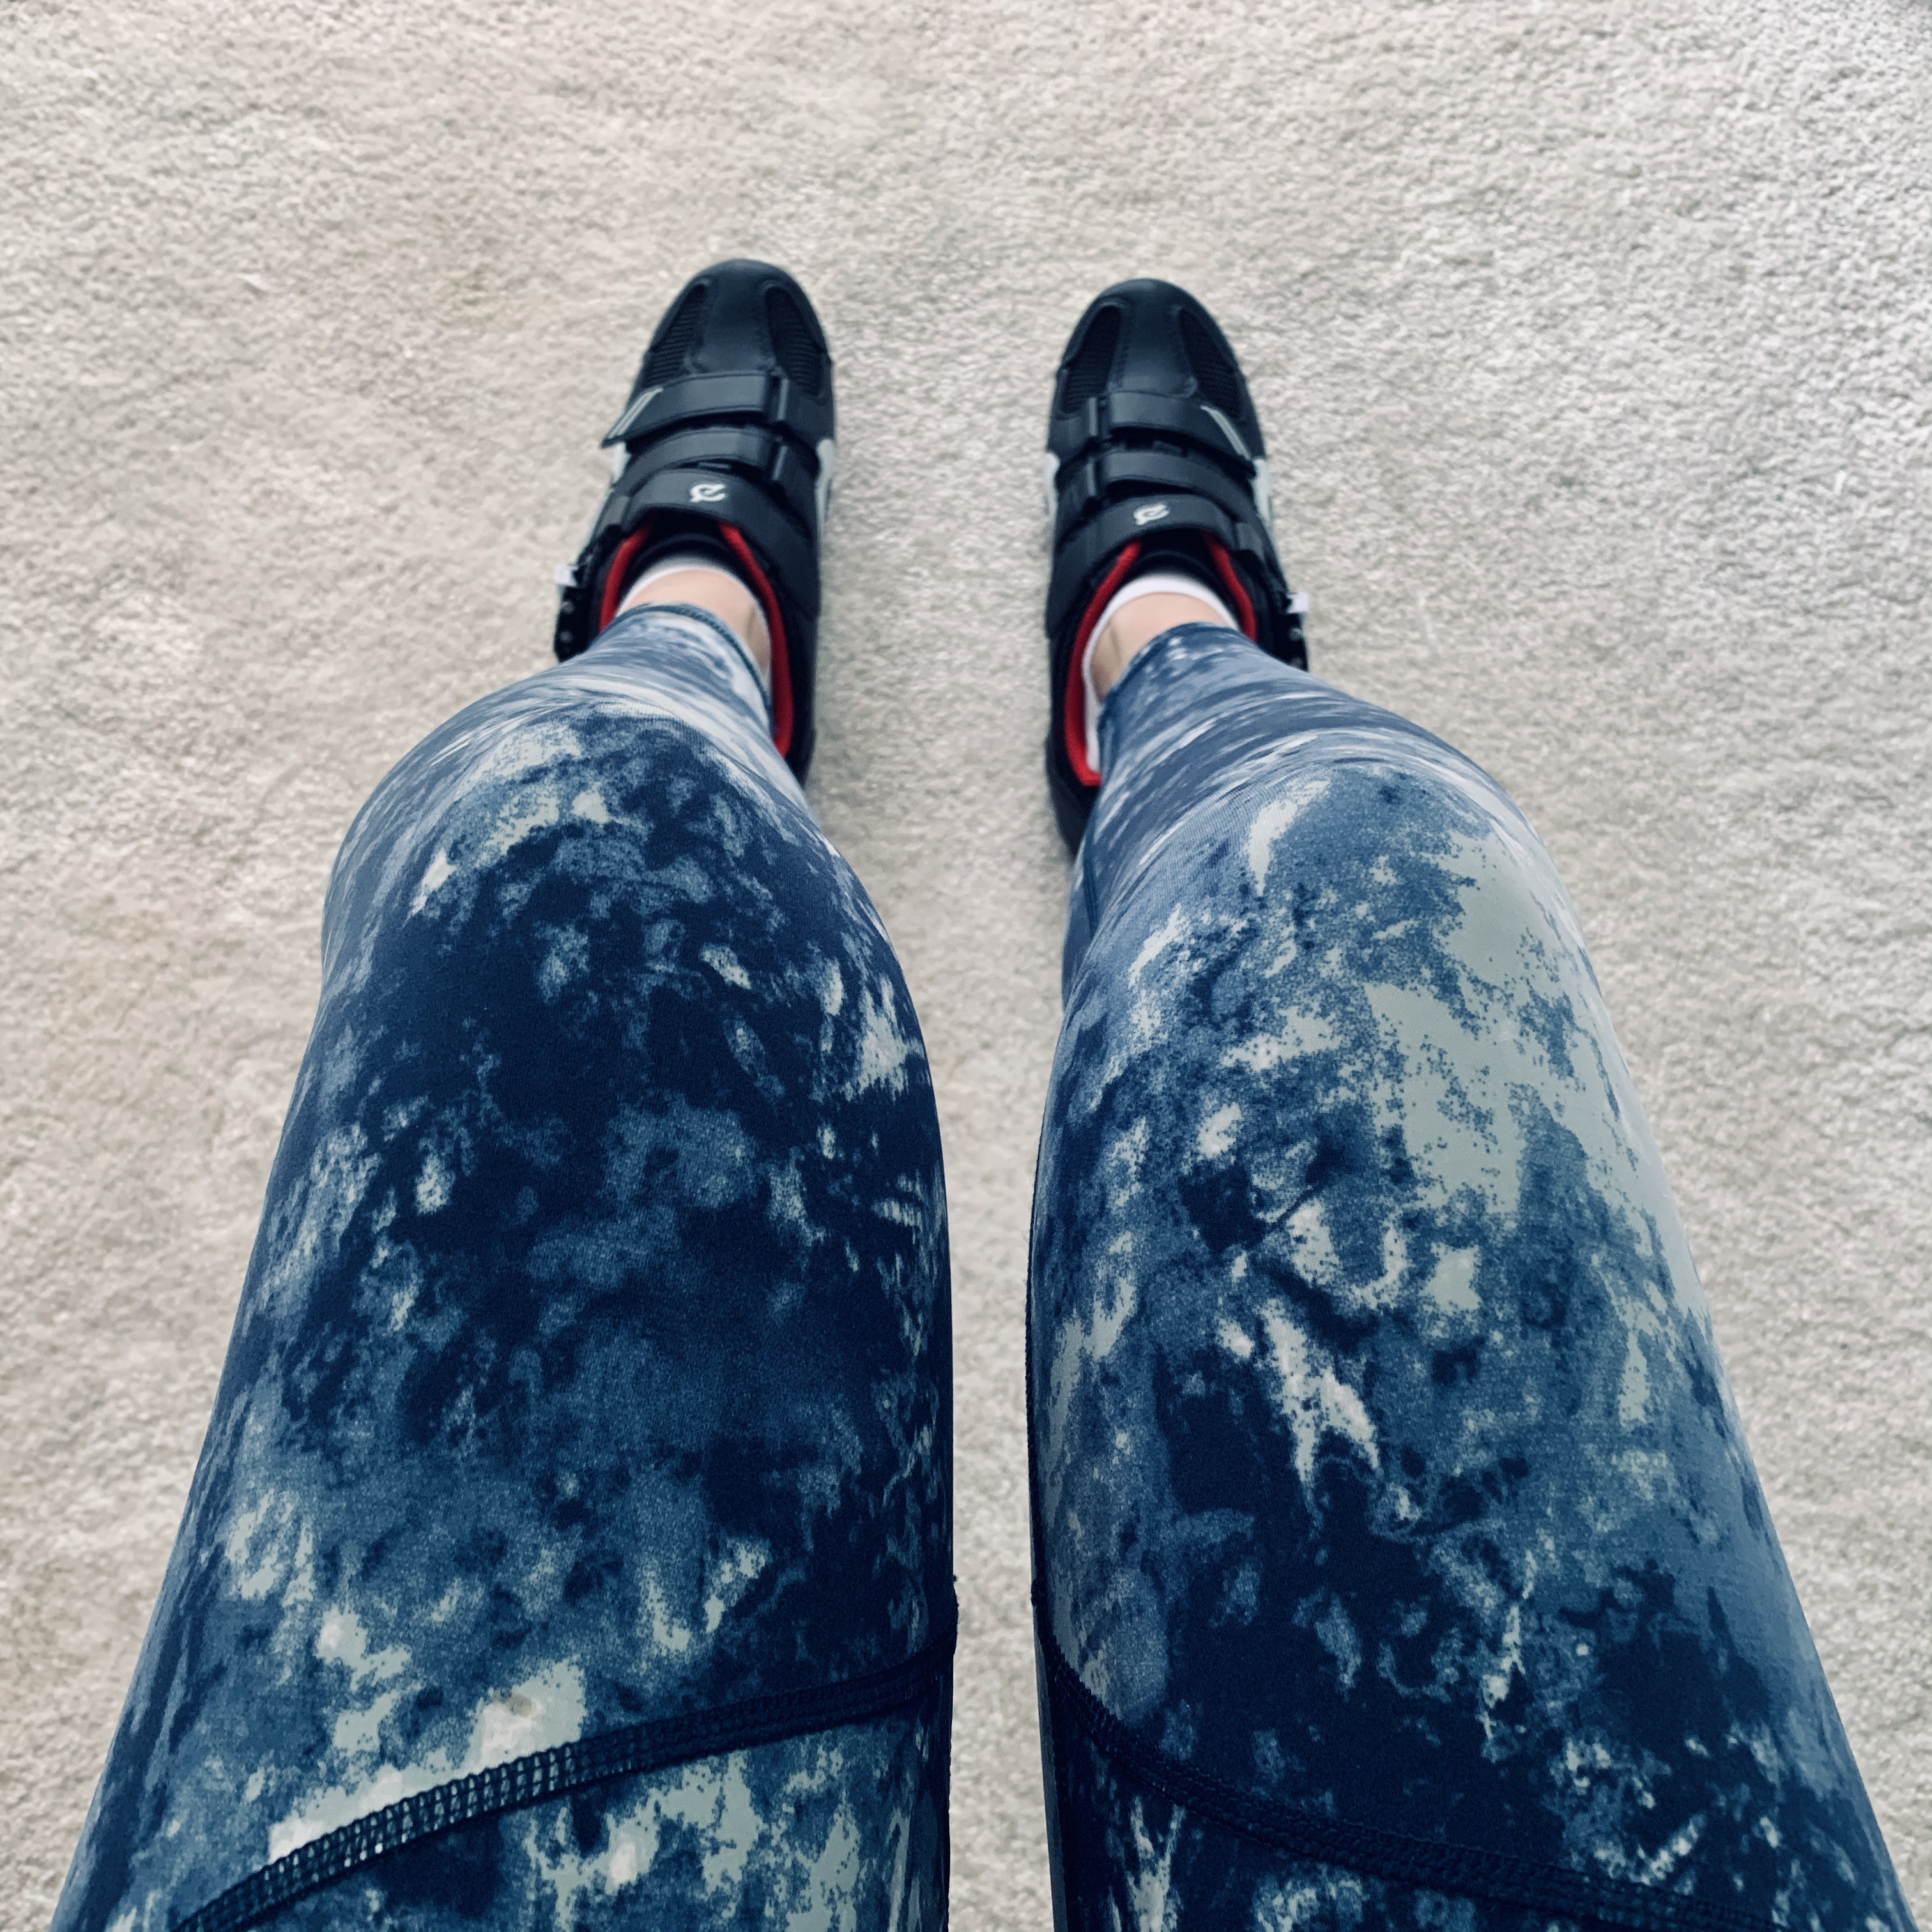 Girl's legs who is wearing cycling leggings and shoes